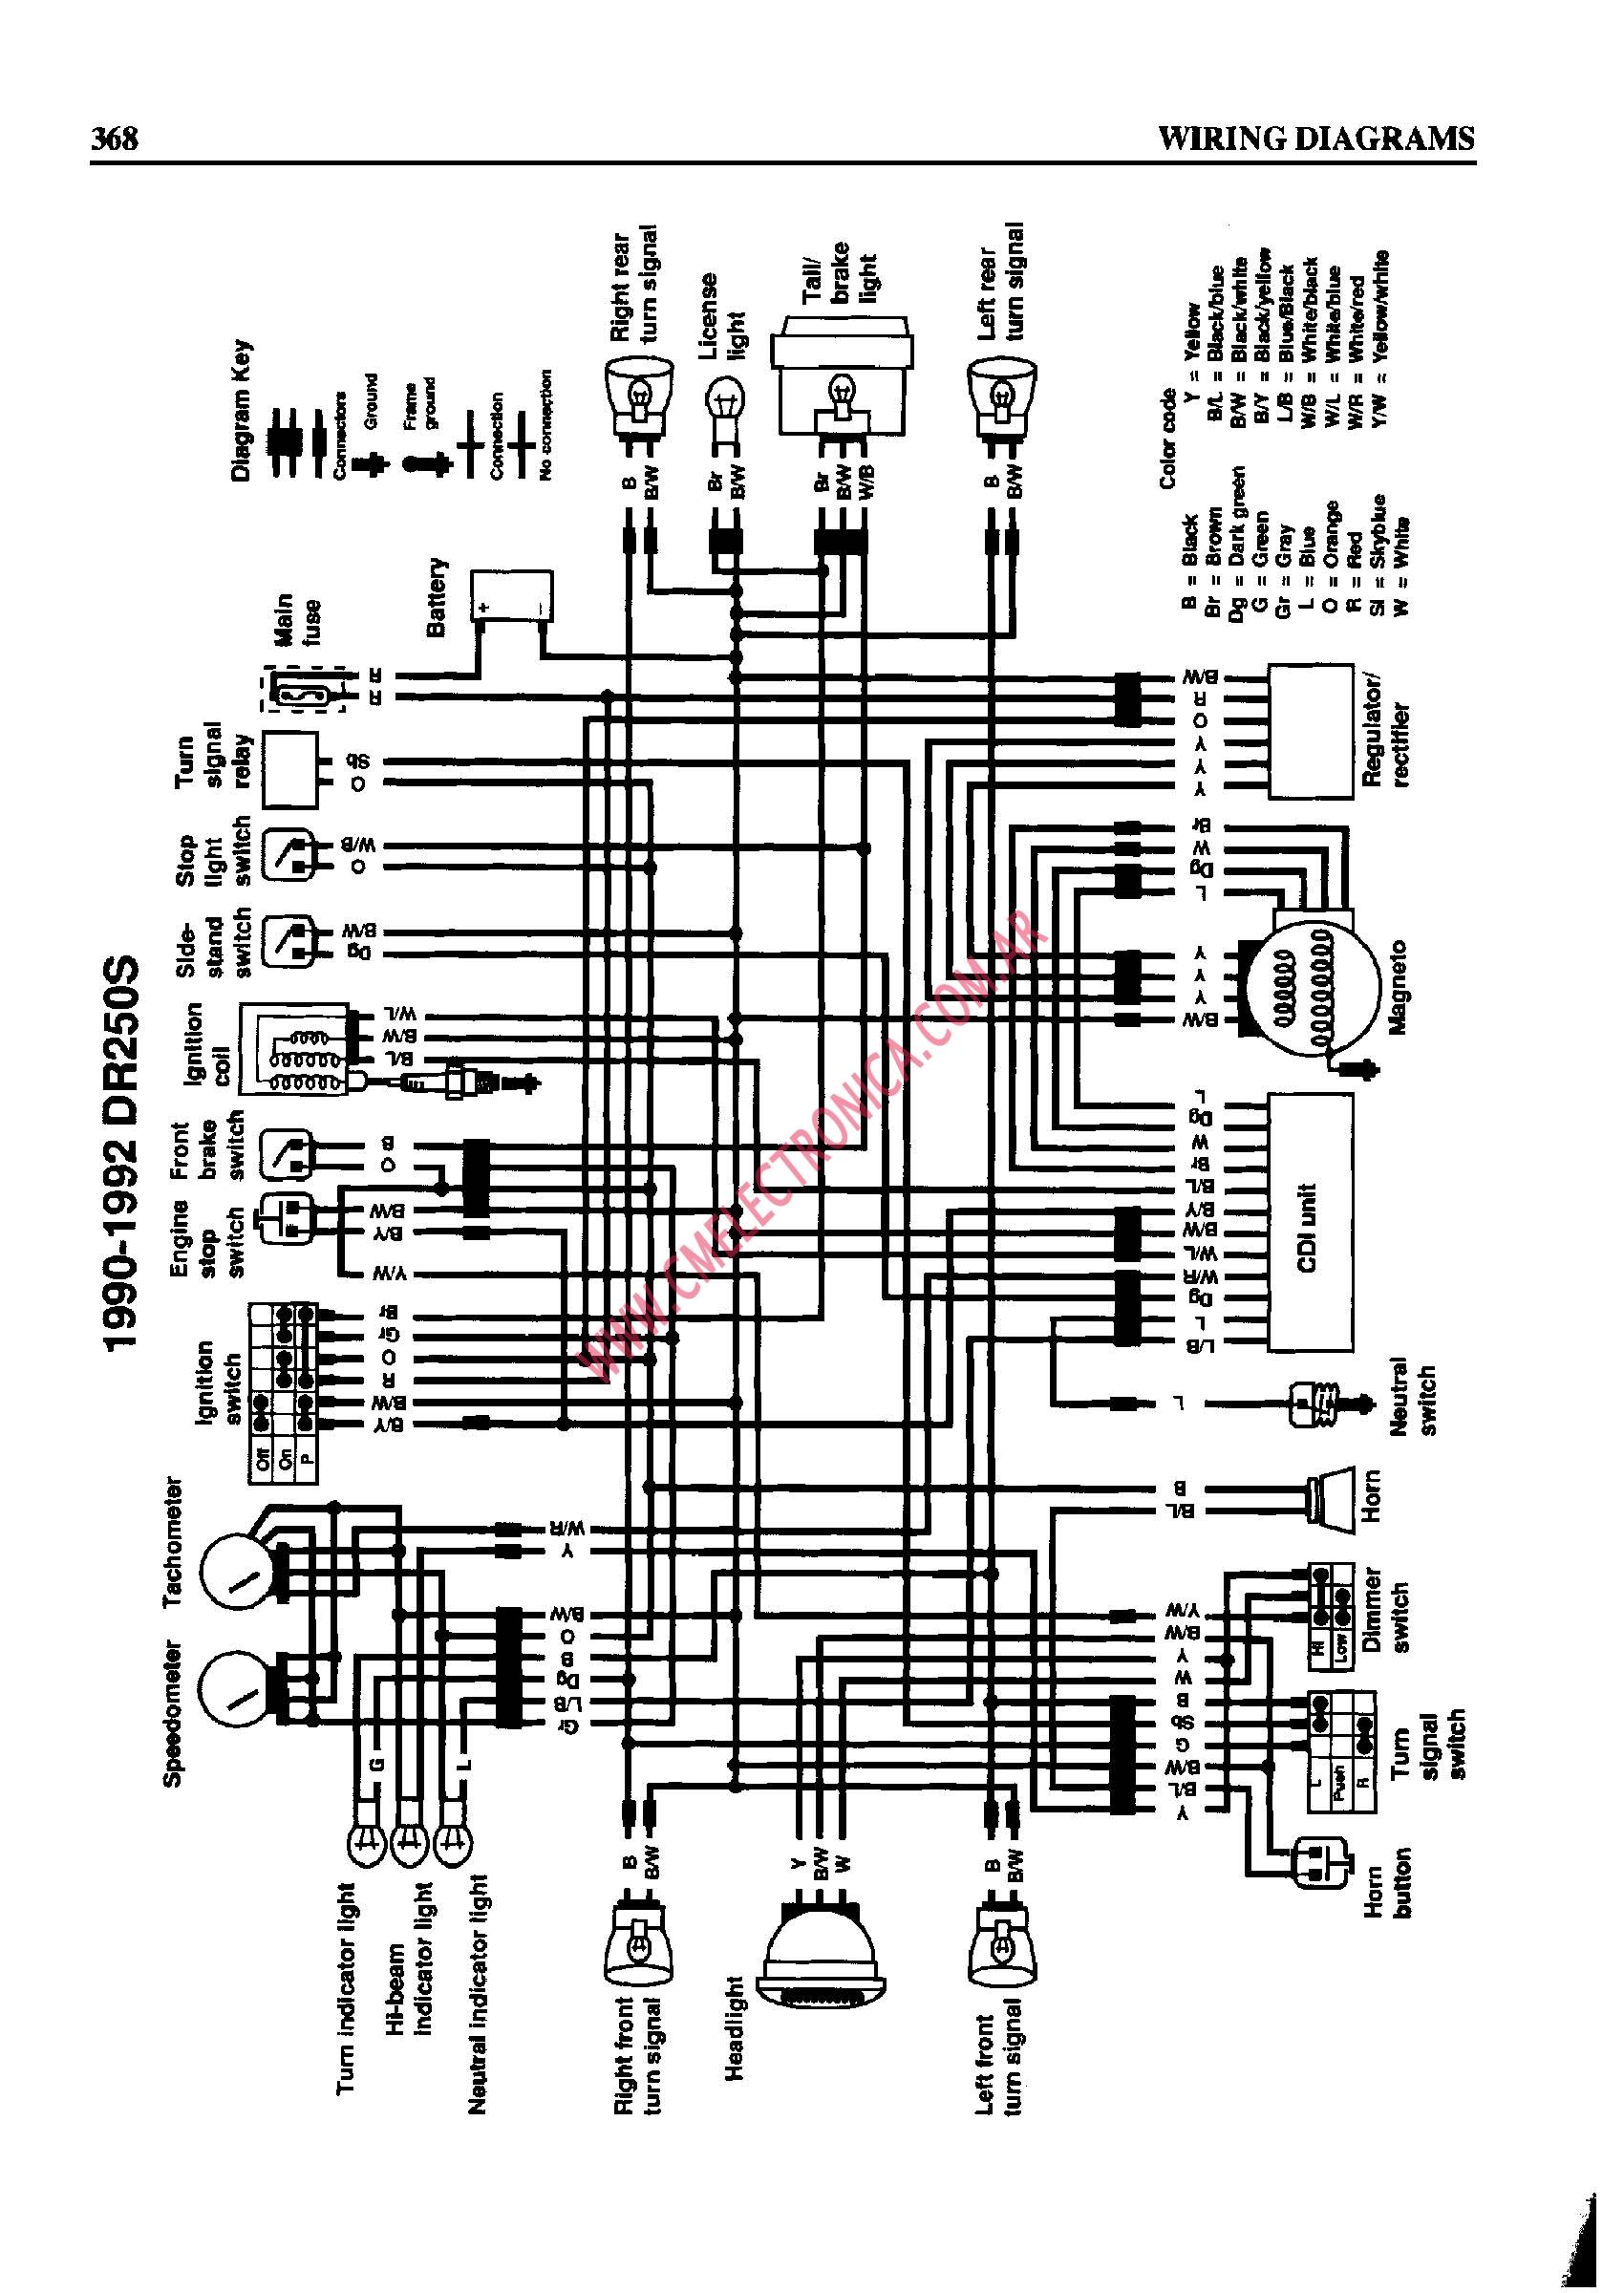 94 Gmc K1500 Exhaust Diagram Wiring Photos For 92 K1500